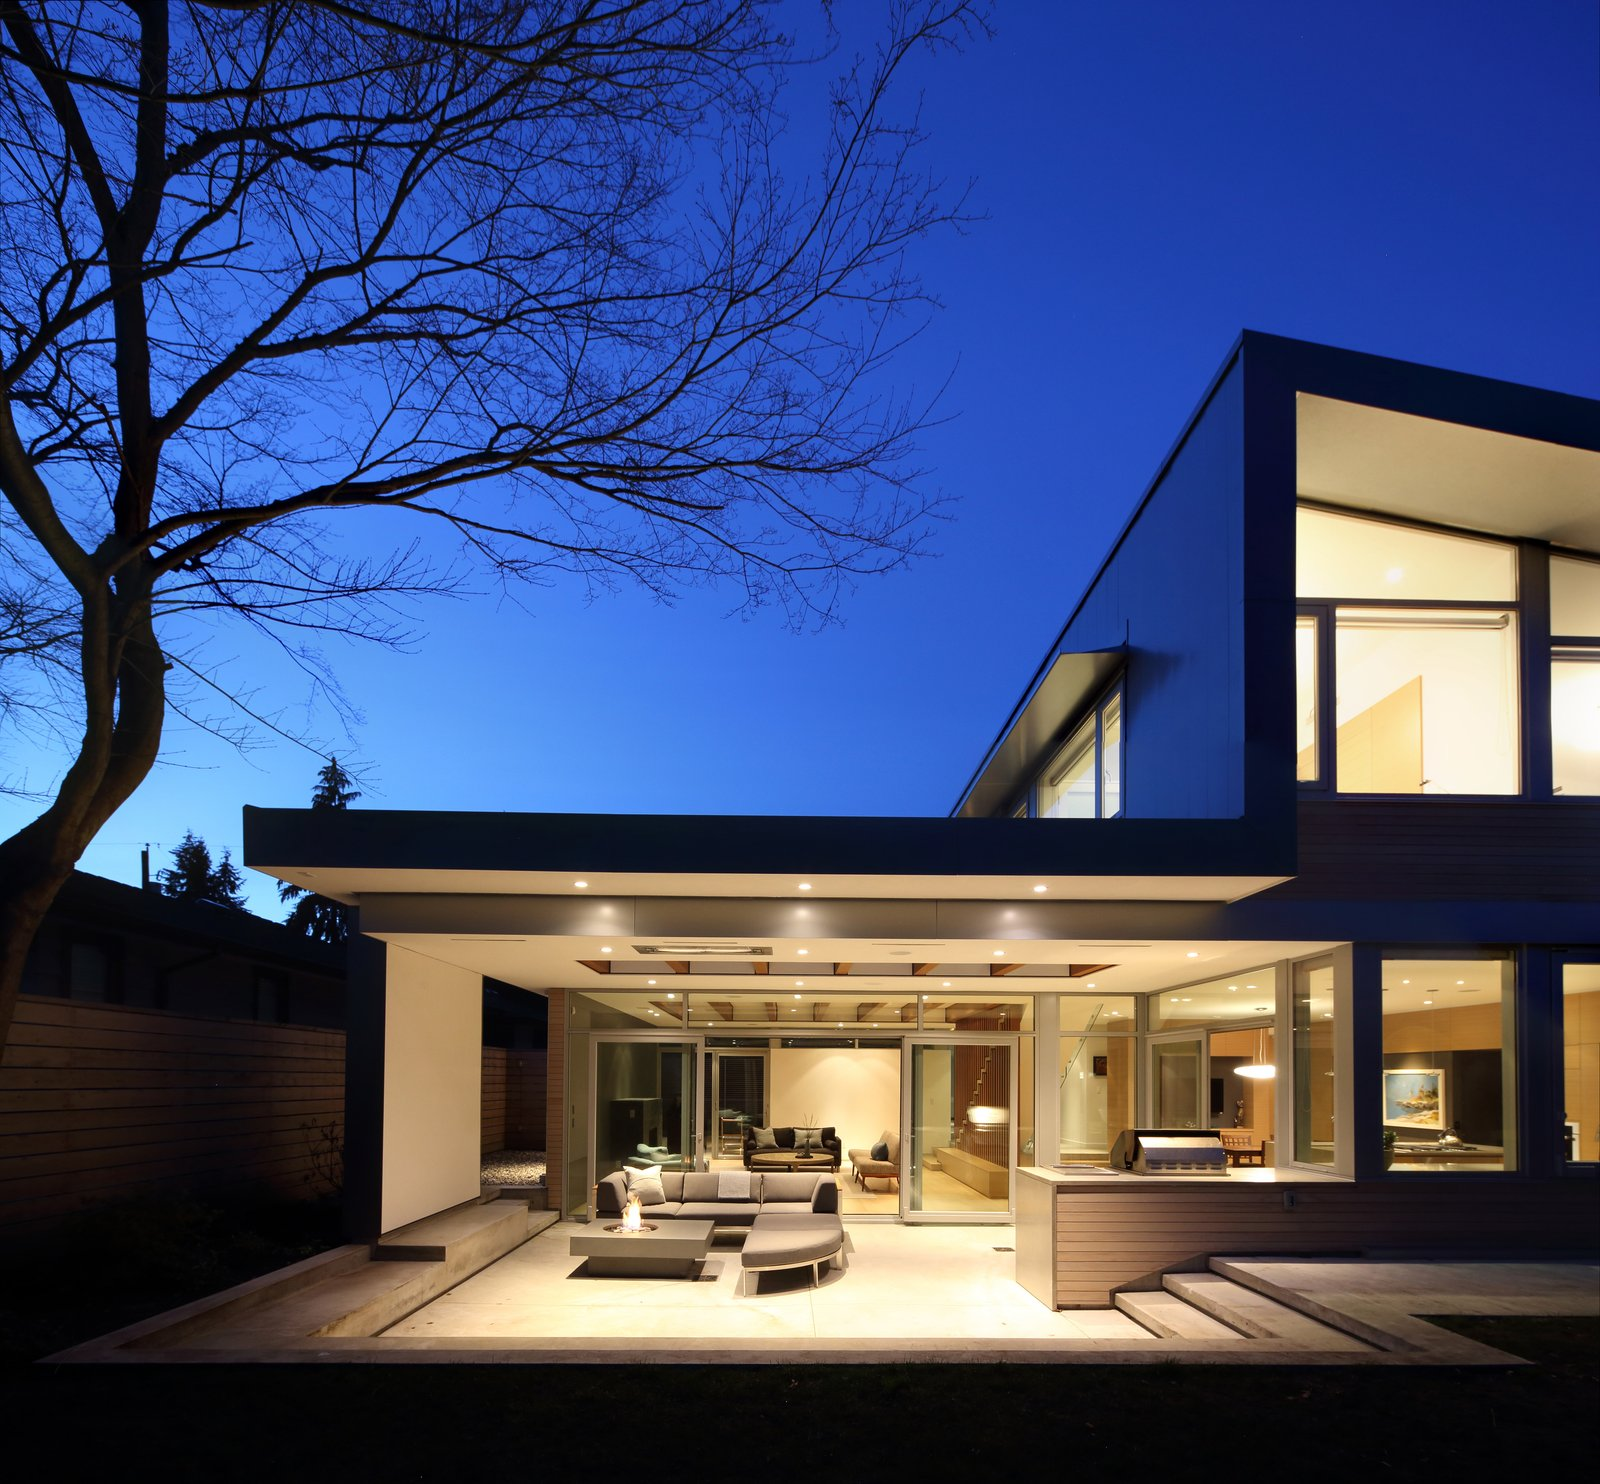 Exterior, House Building Type, Wood Siding Material, Shed RoofLine, Metal Siding Material, and Flat RoofLine Rear patio  The Edge House